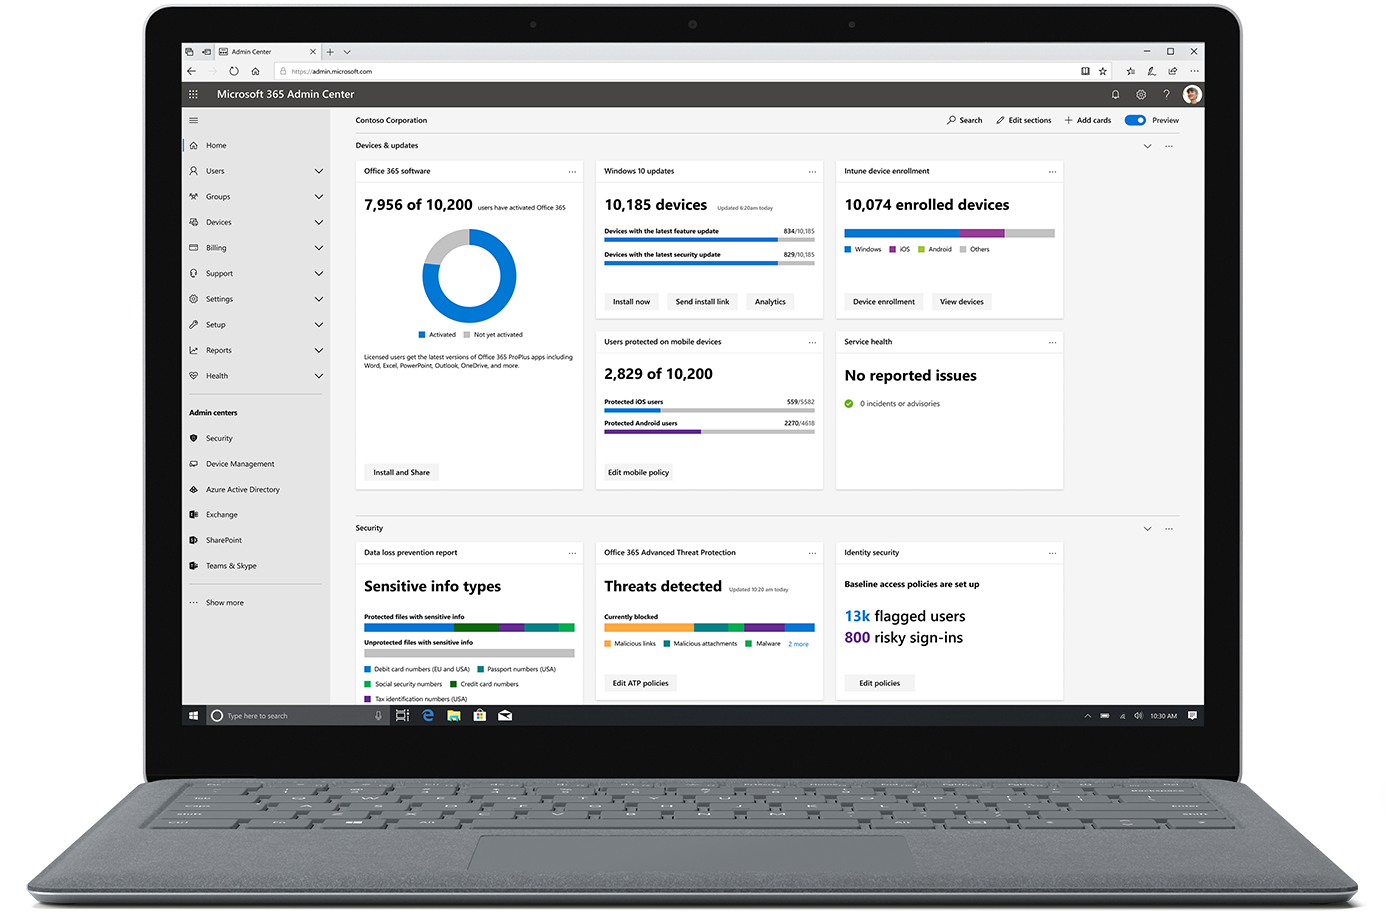 Image shows the Microsoft 365 admin center on an open laptop.